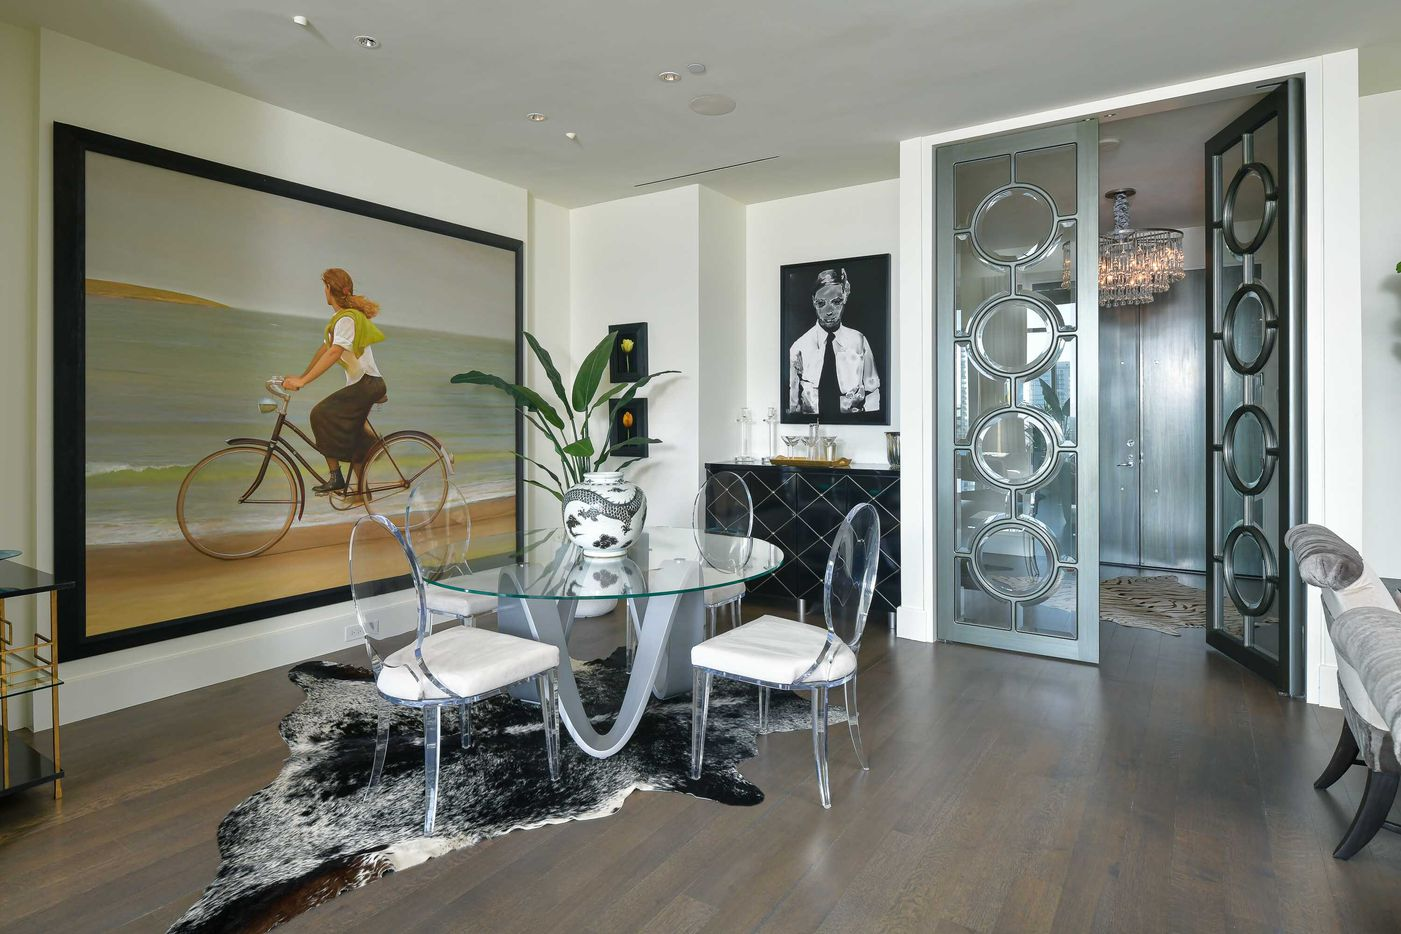 Take a look at this penthouse apartment at 1717 Arts Plaza, Unit #2307 in Dallas. The two-story penthouse in the One Arts Plaza building has three bedrooms, three bathrooms and one half-bathroom, plus two terraces.